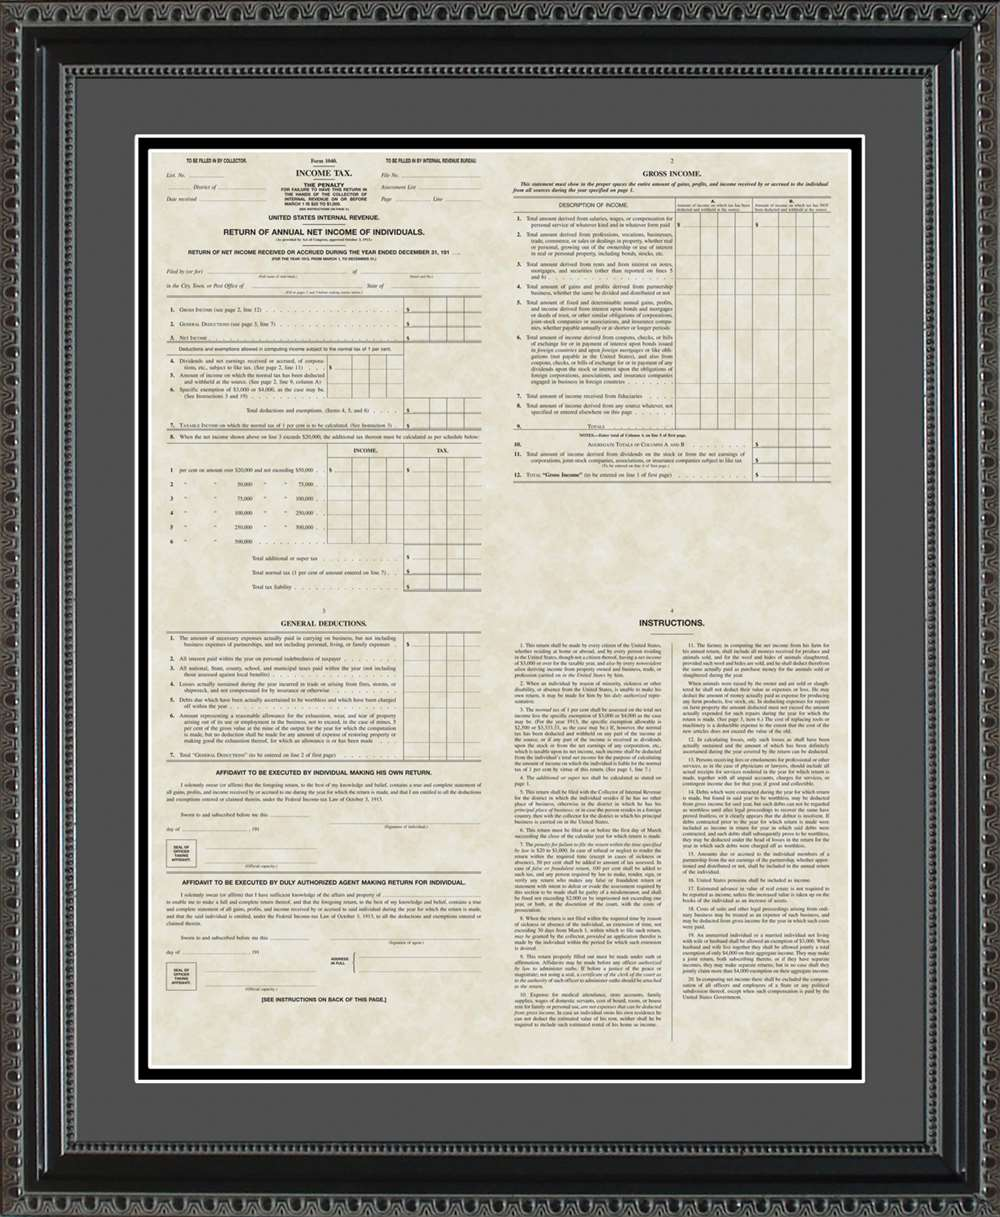 First IRS Form 1040 Poster, 16x20